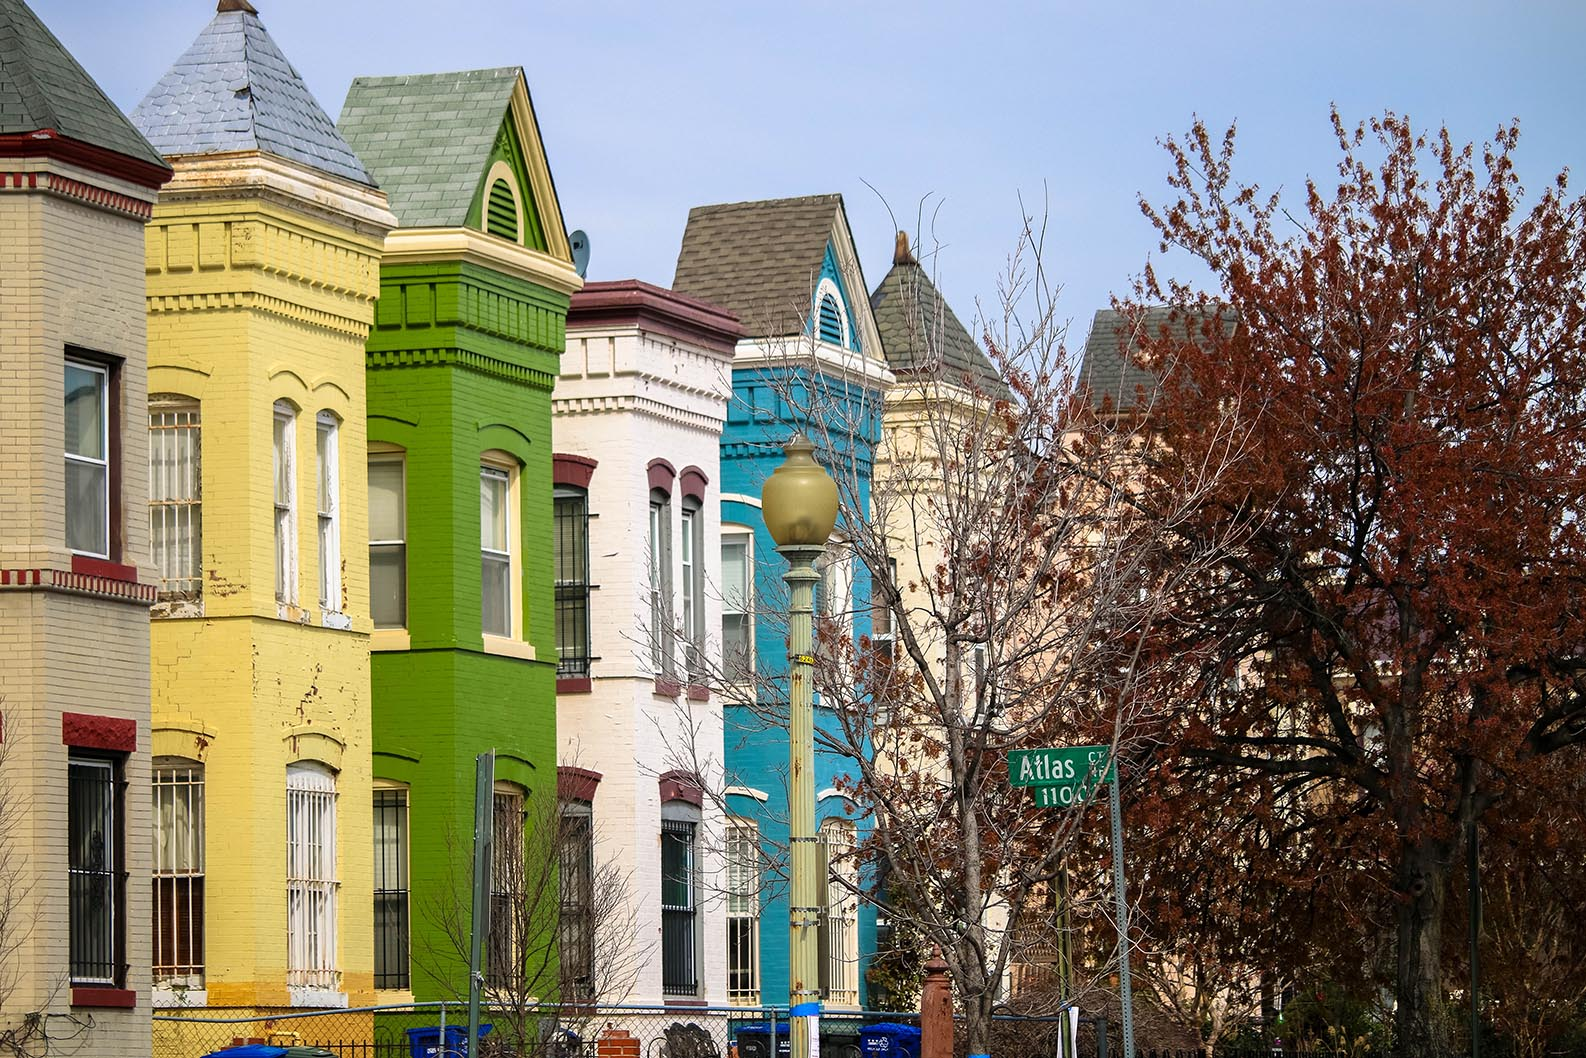 Colorful row houses in Atlas District, Washington, D.C.